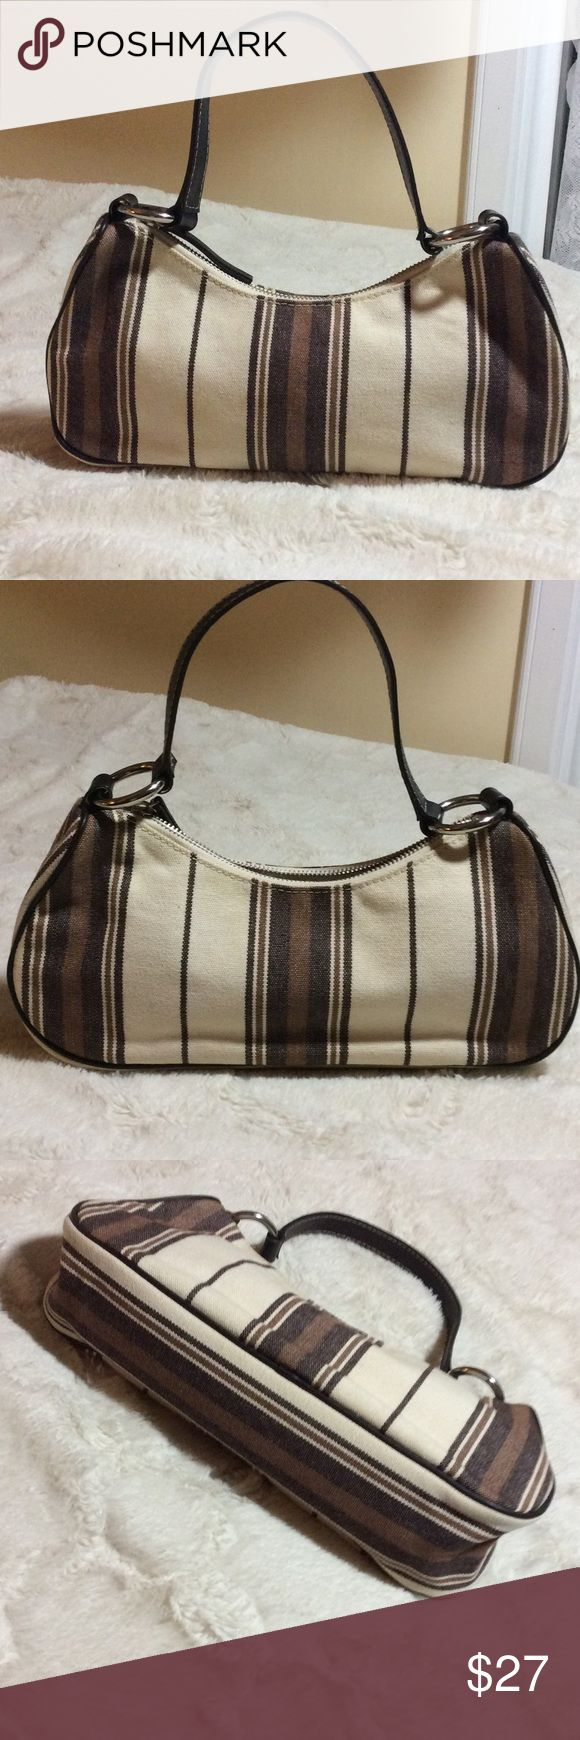 """Banana Republic purse...so cute!🐻 Small canvas, leather and silver tone metal purse. Handle is long enough to put over your shoulder. Measures 12"""" wide at bottom, 4"""" deep, 2 3/4"""" wide base. Great for fall! Smoke free home as always. Banana Republic Bags Mini Bags"""